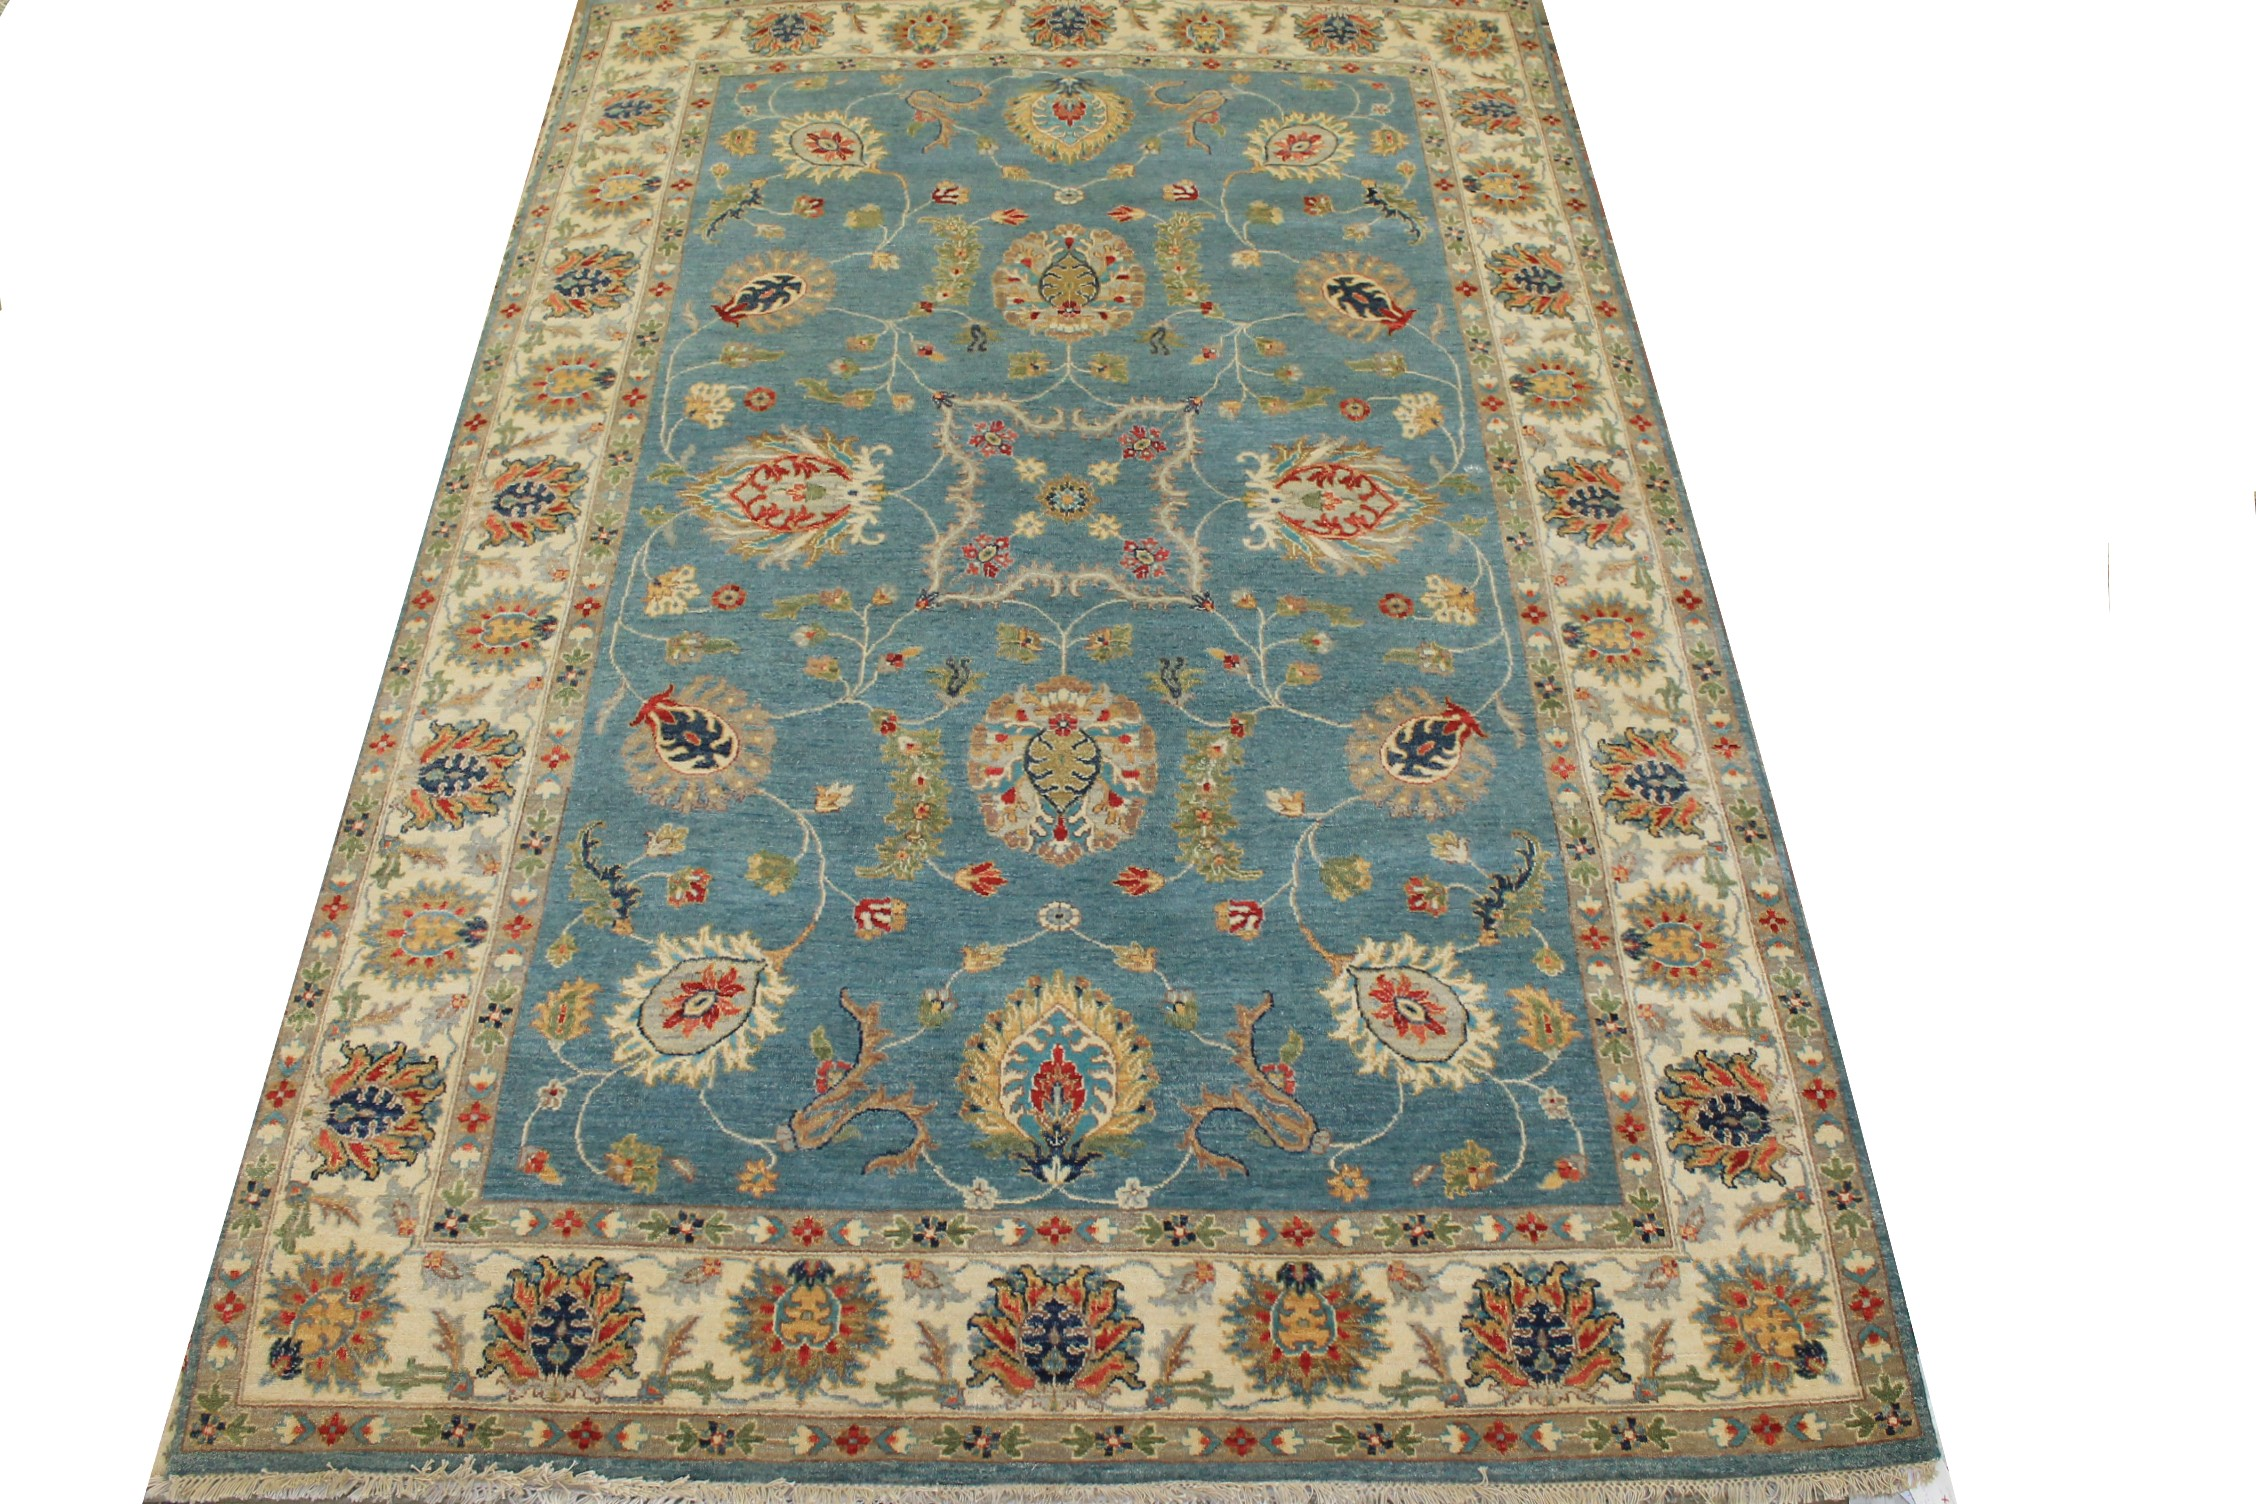 6x9 Traditional Hand Knotted Wool Area Rug - MR025212